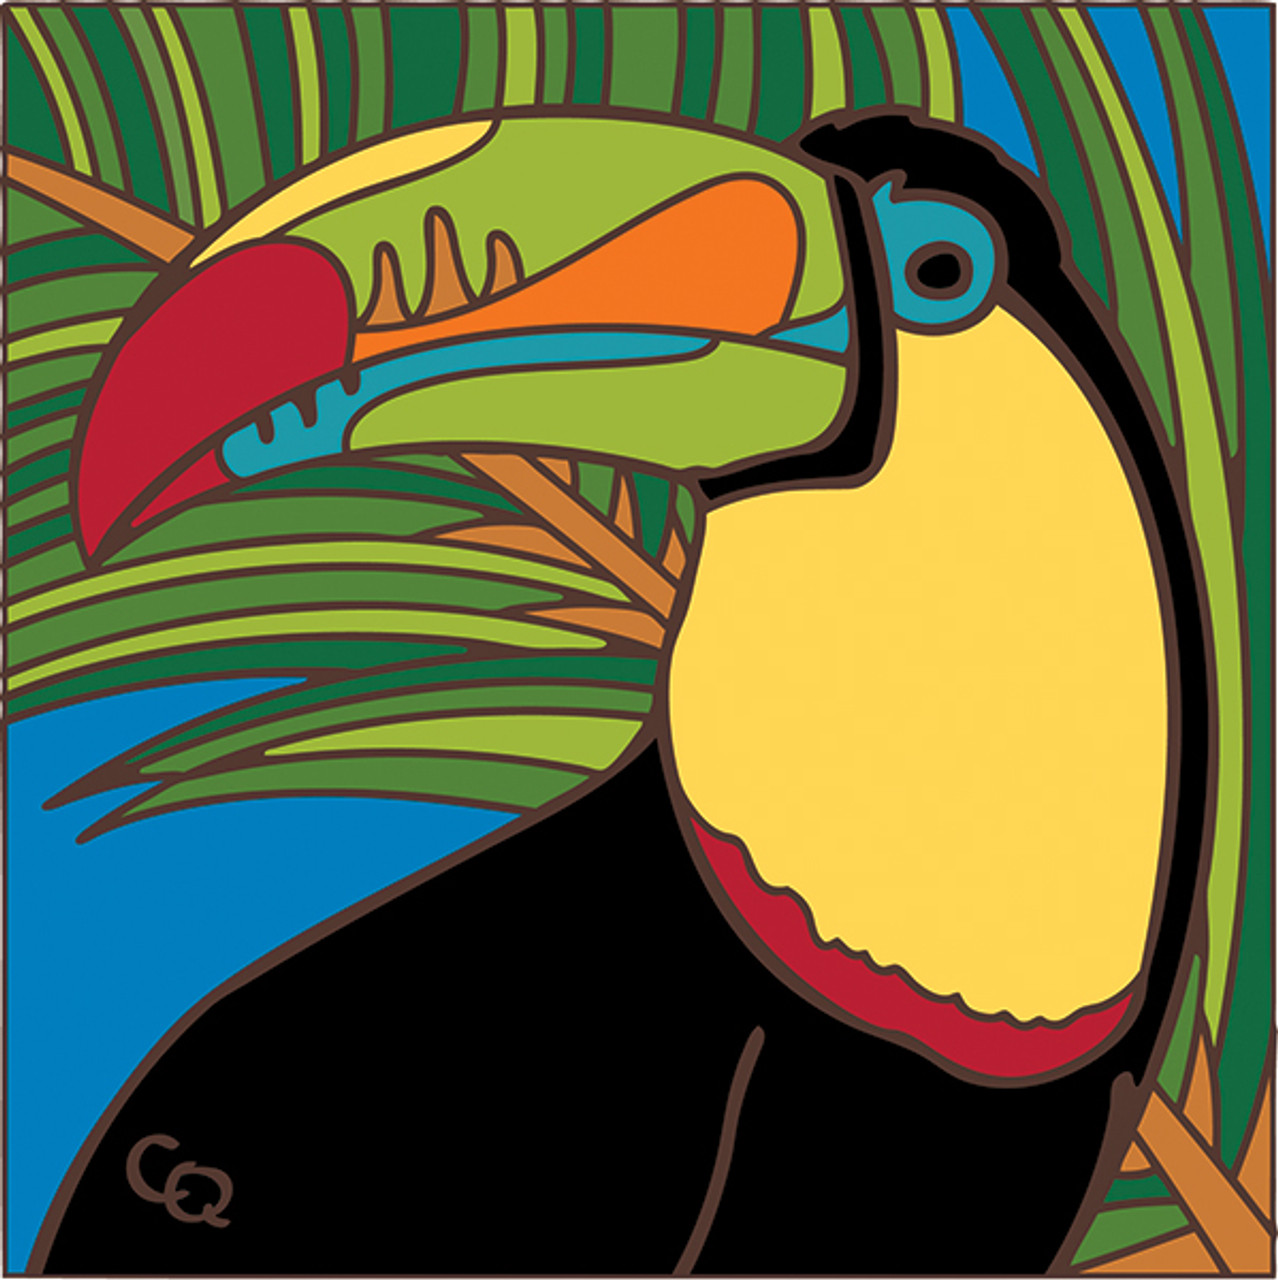 Toucan hand painted ceramic art tile 6 x 6 inches with easel back